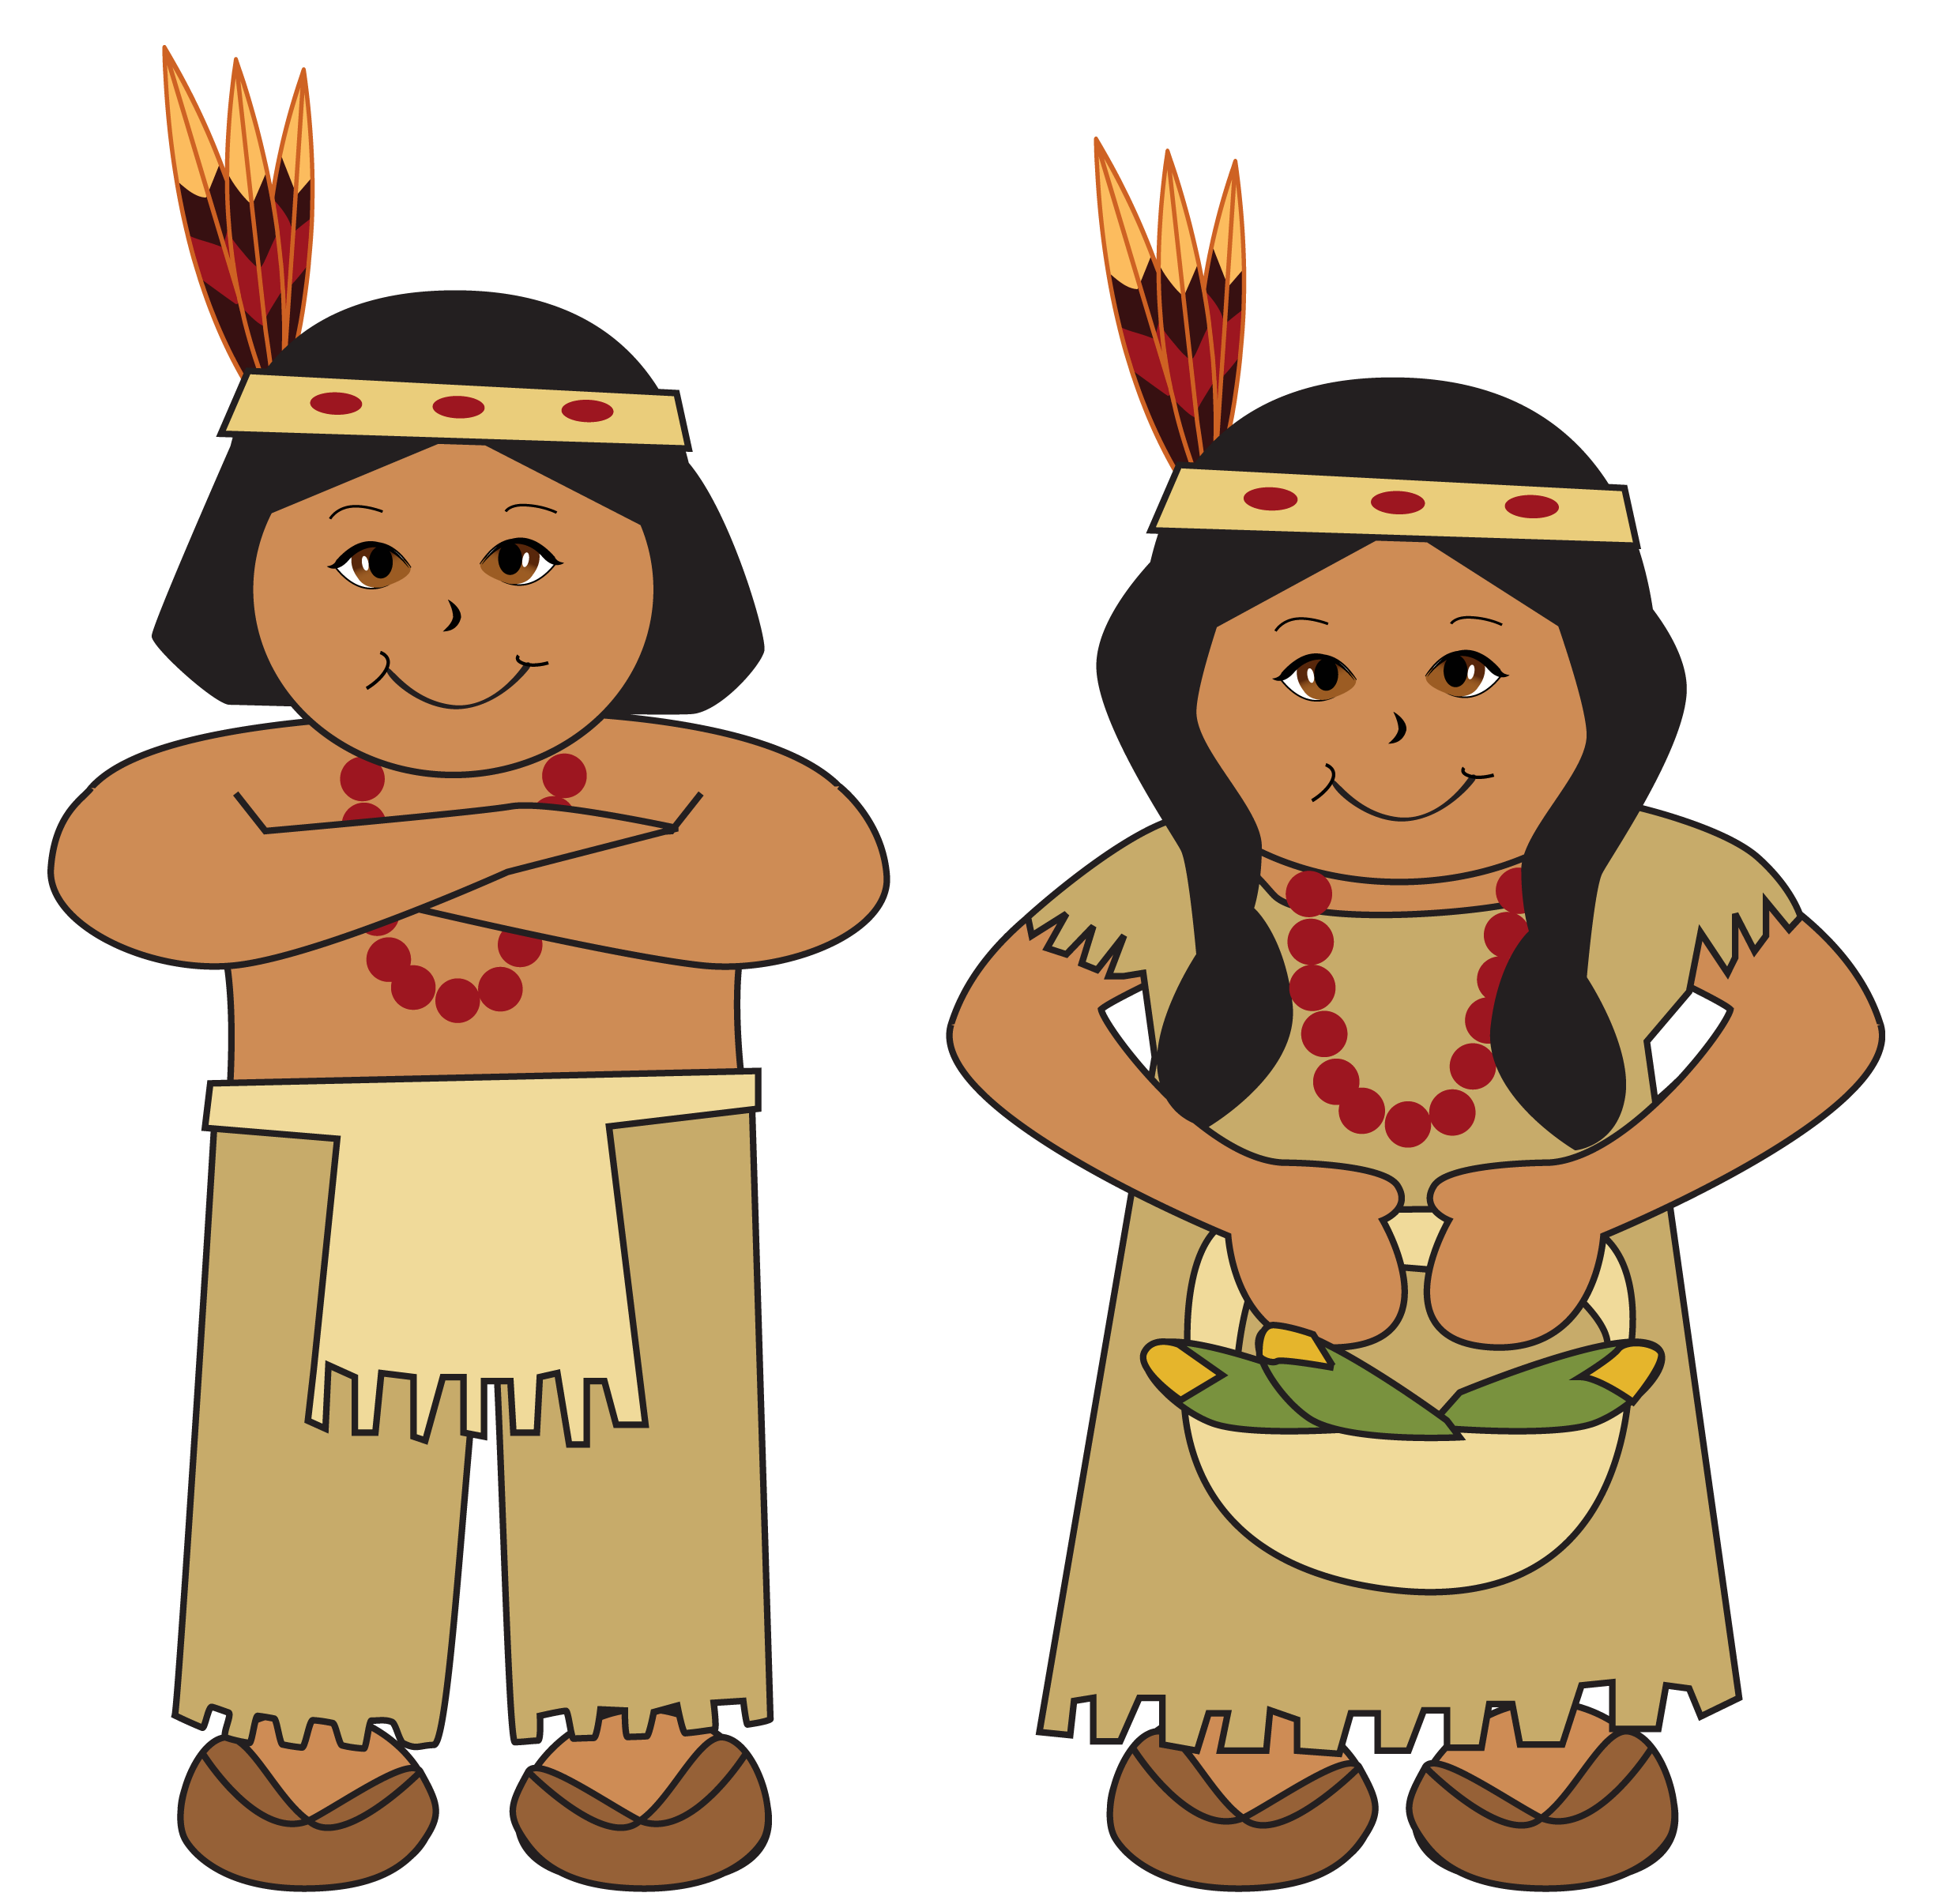 Native americans picture indian. Playdough clipart preschool